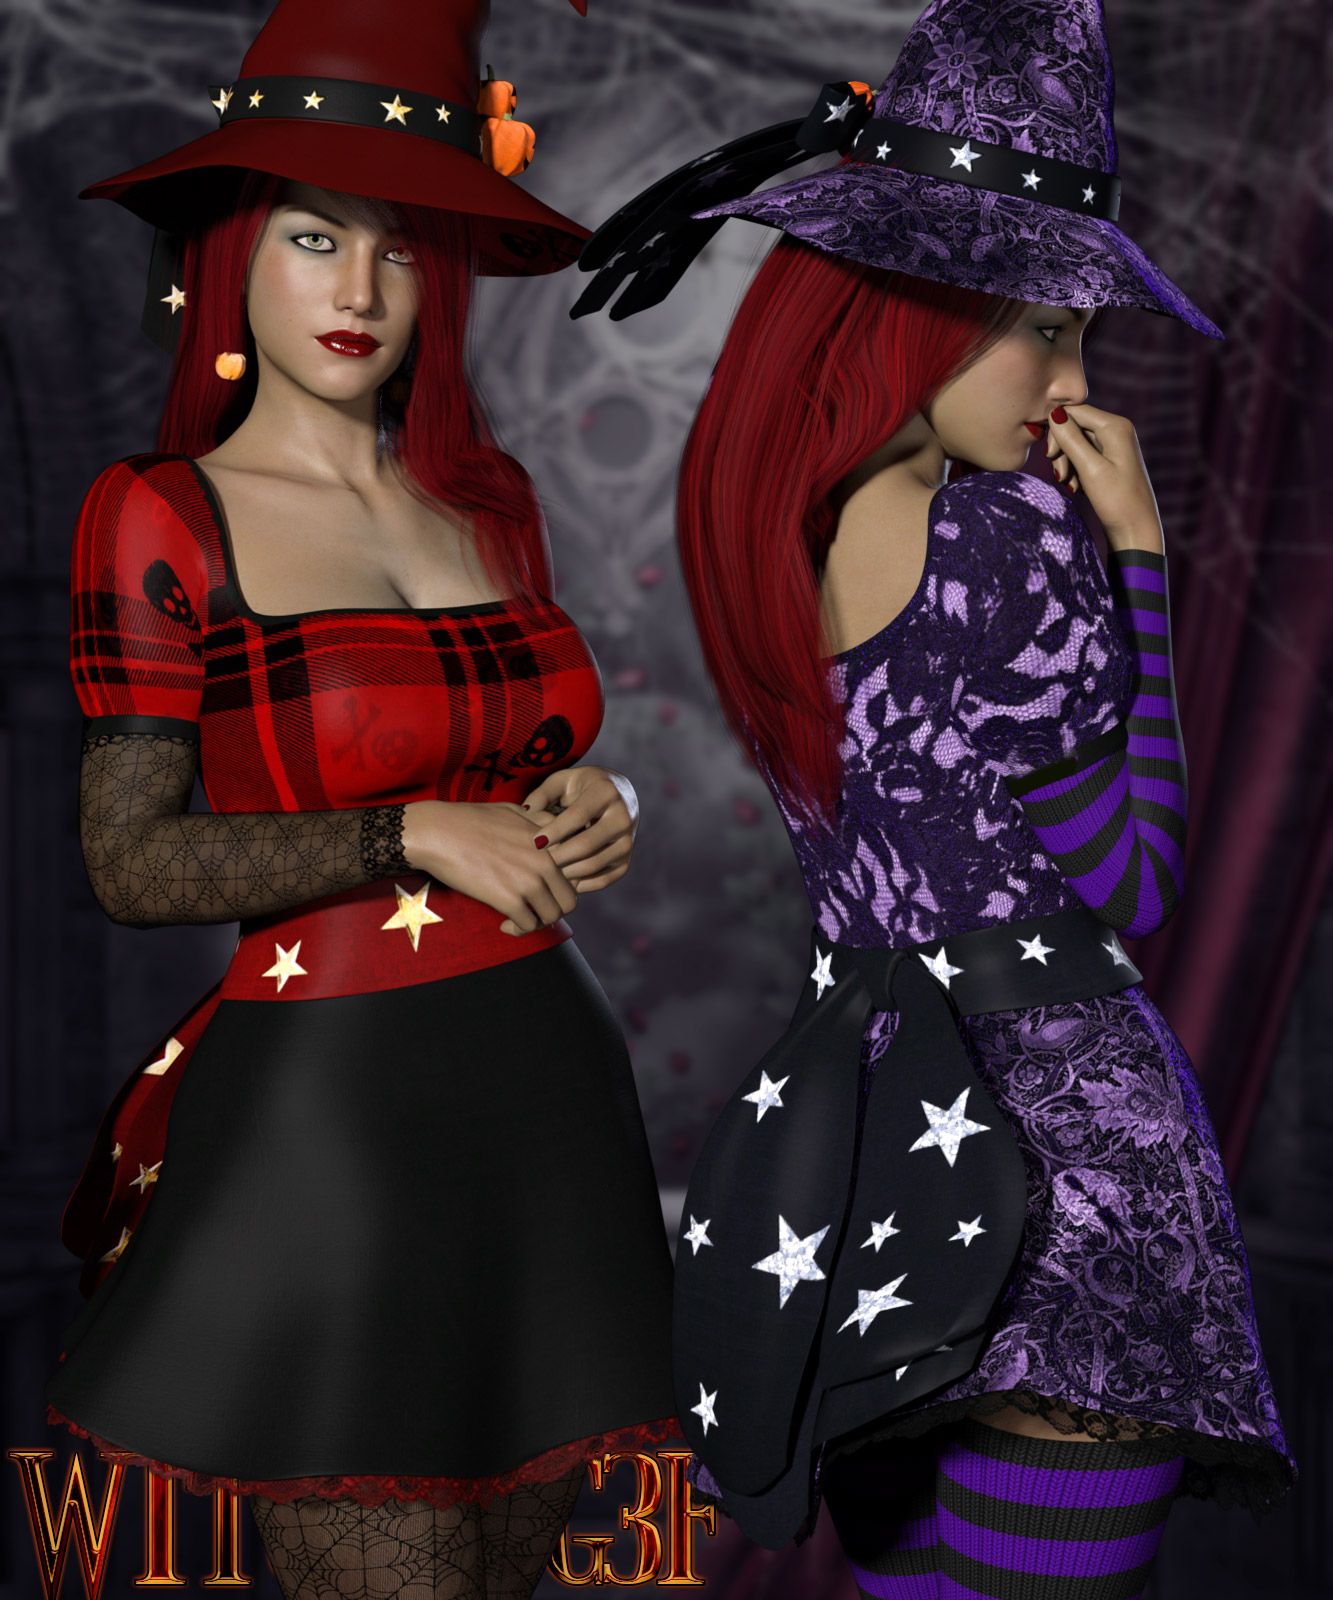 Witchy G3F